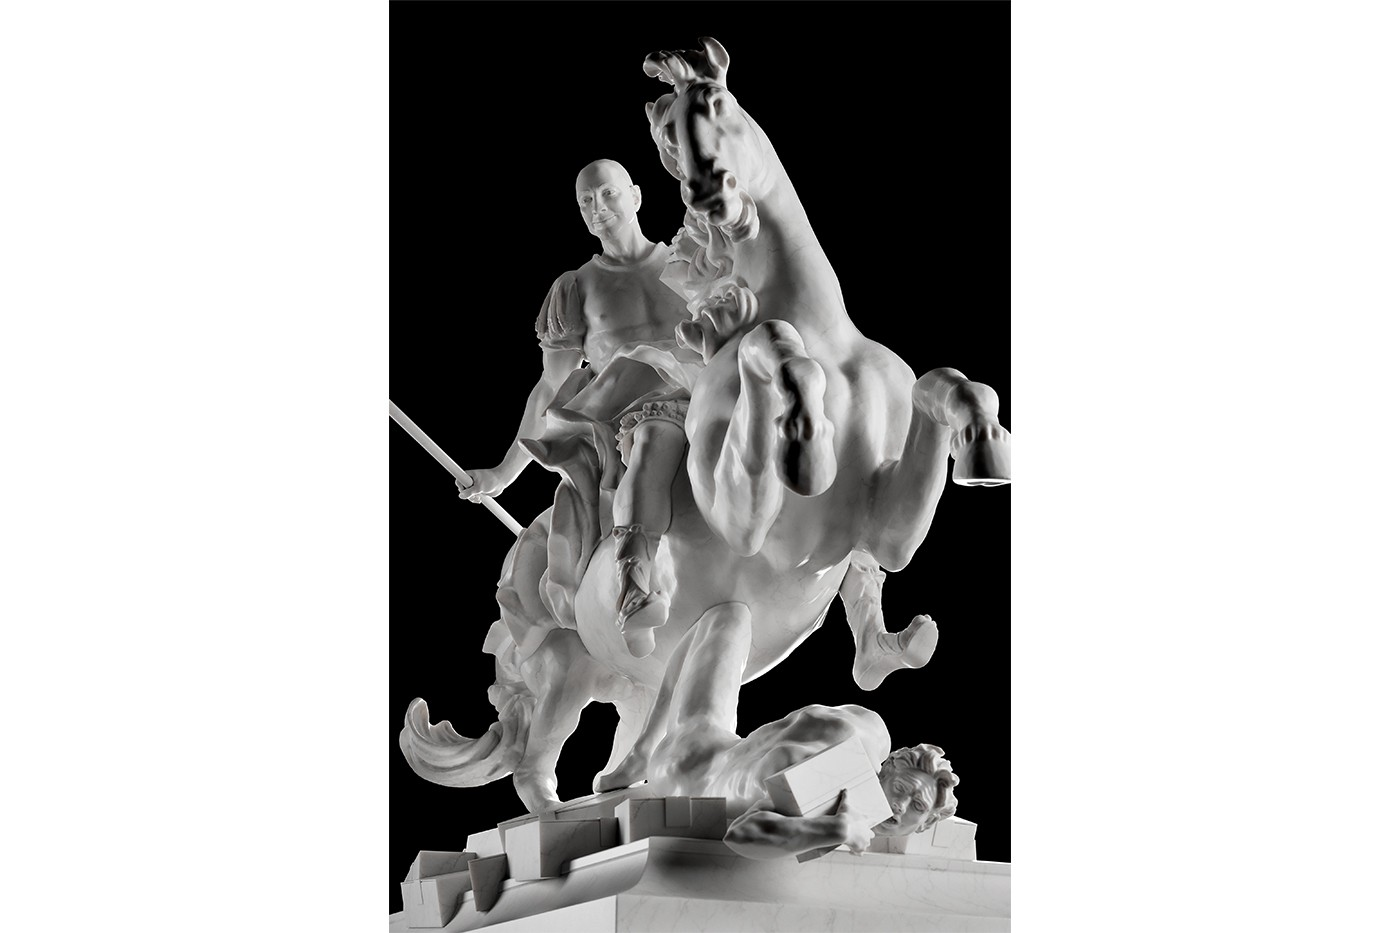 A 3D printed statue of Jeff Bezos riding a horse. Image via Sebastian Errazuriz Studio.